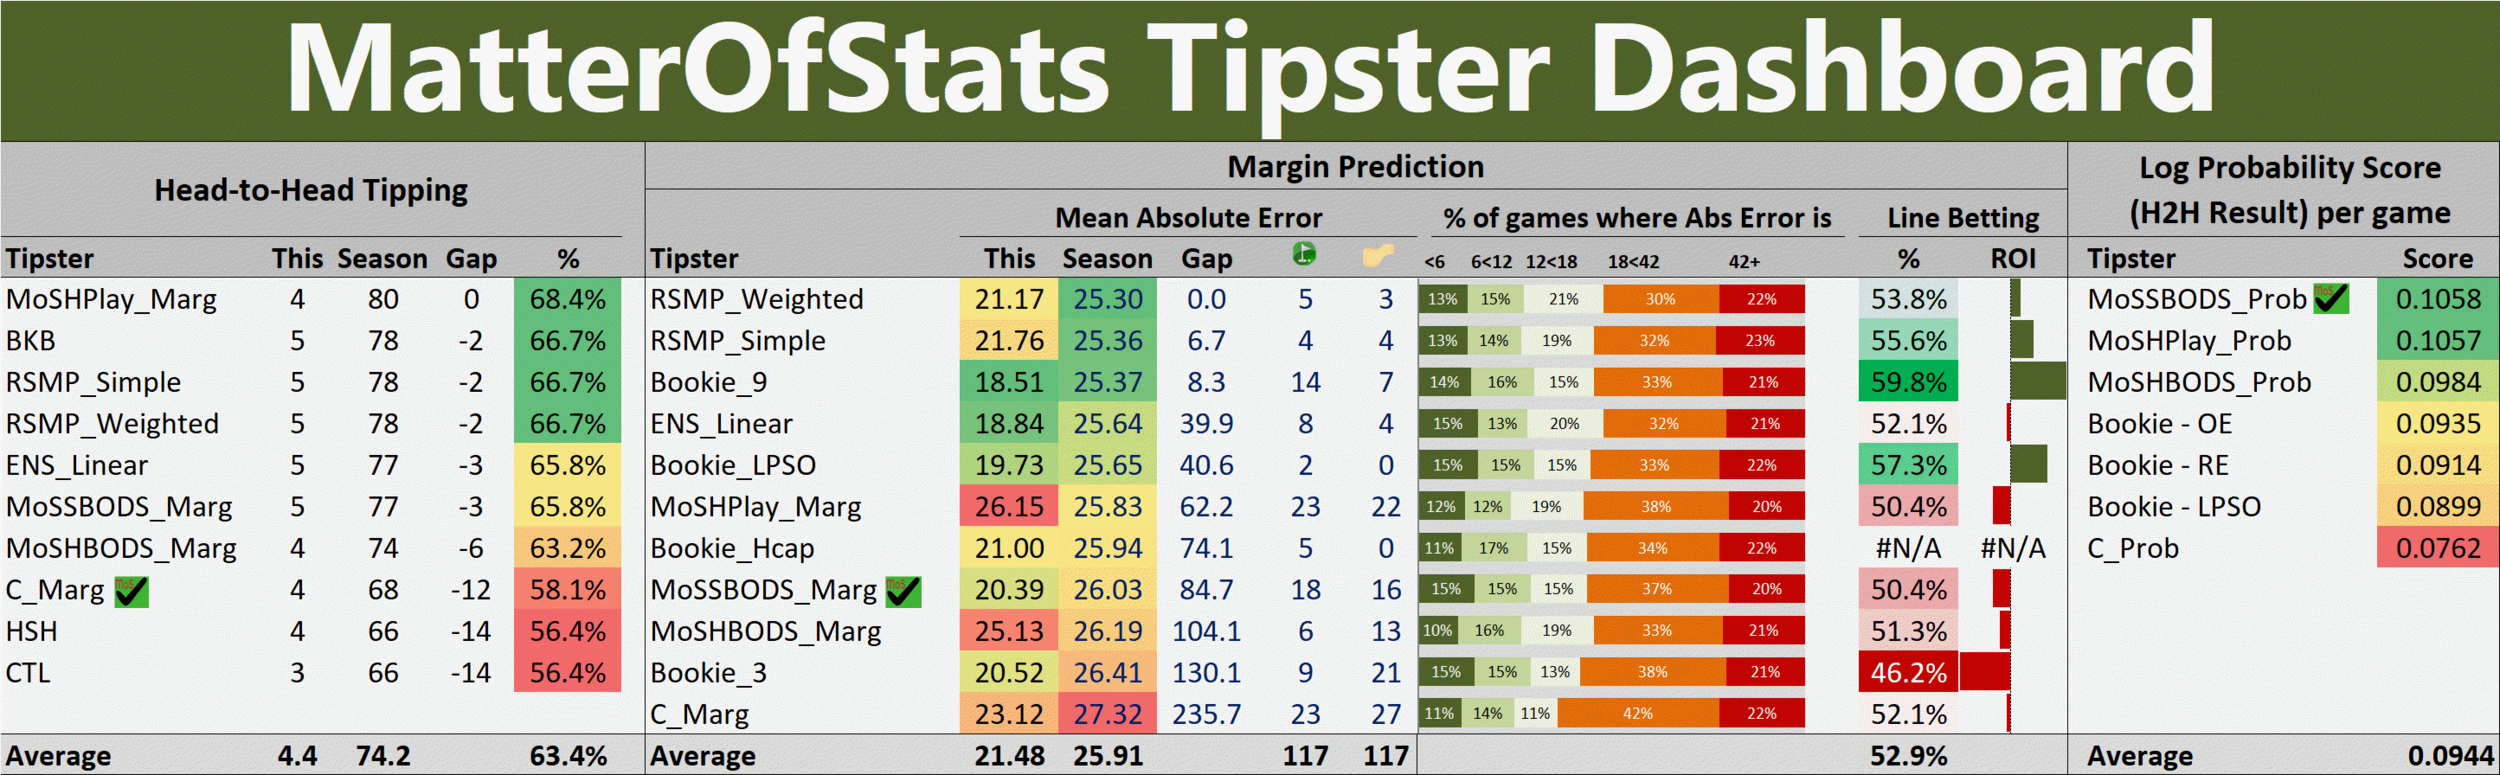 R14 - Tipster Dashboard.png